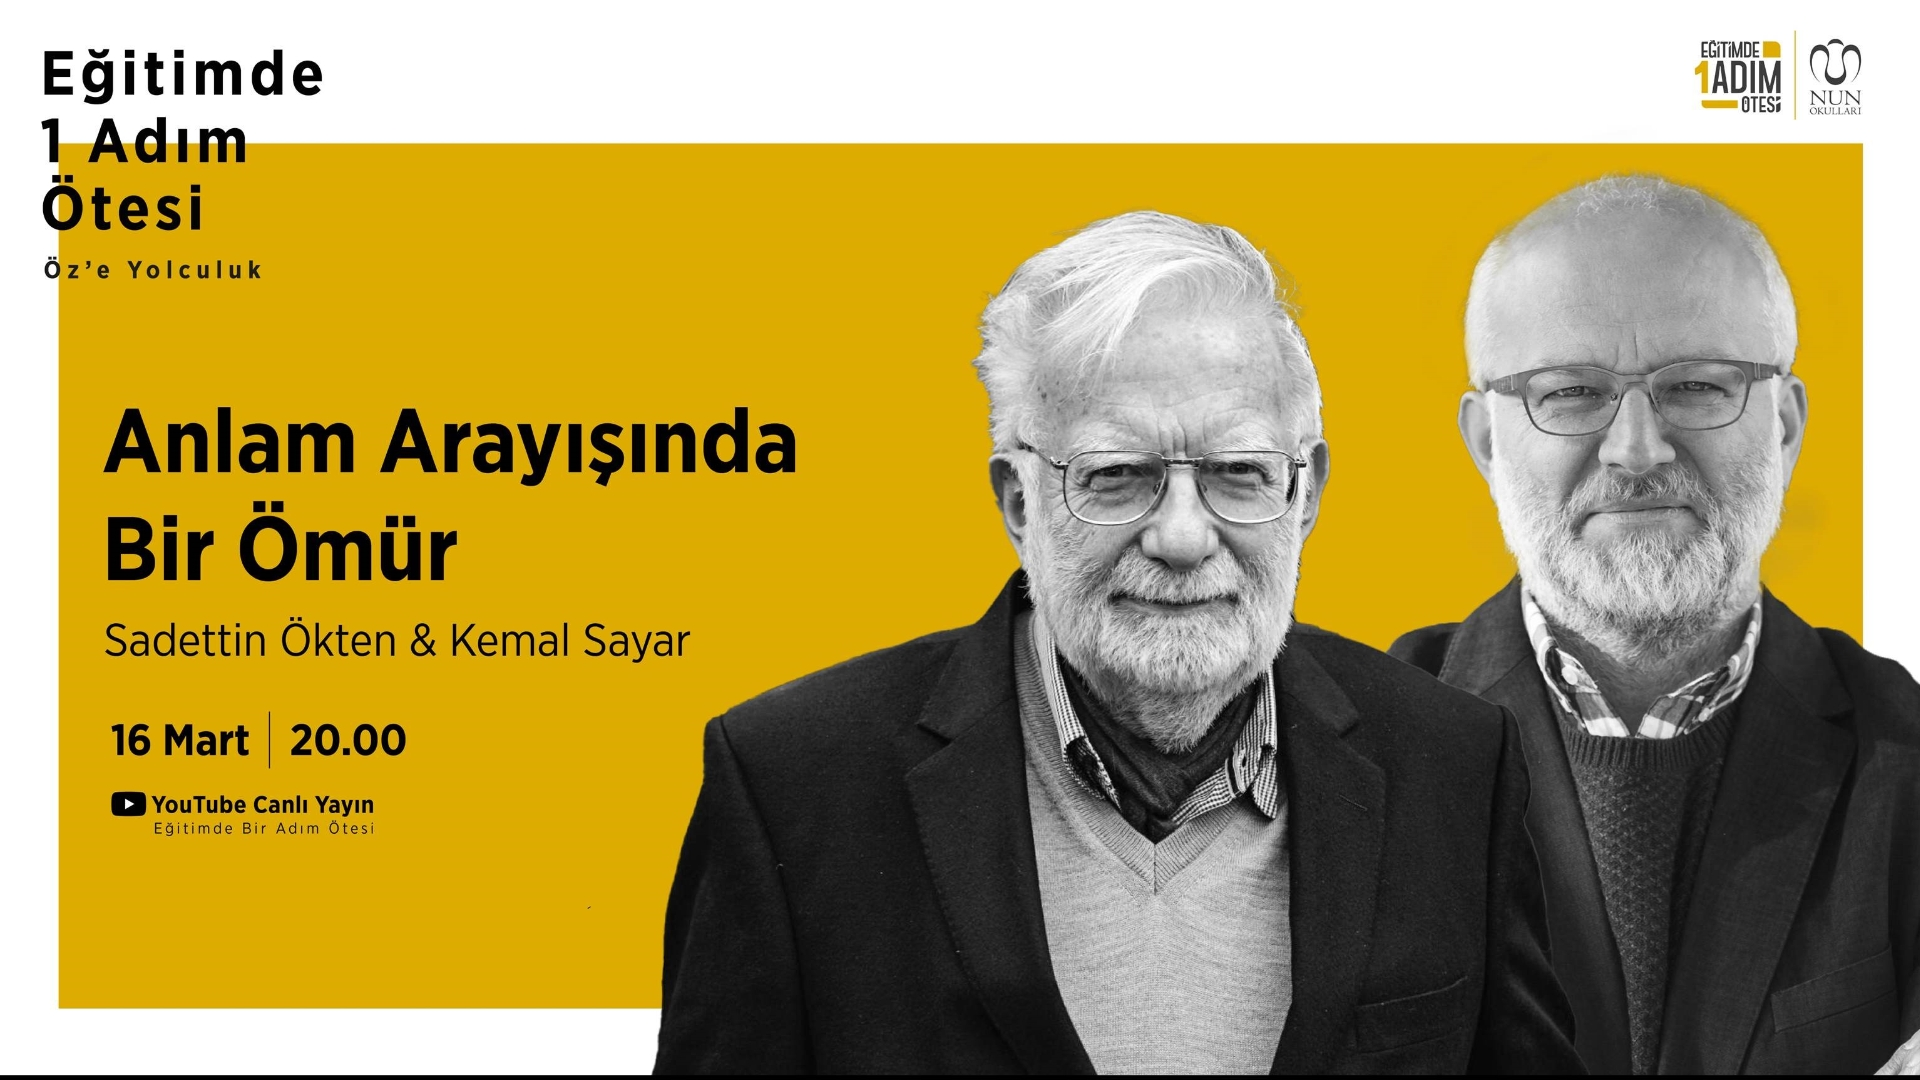 We Discussed the Concept of Searching for Meaning with Sadettin Ökten and Kemal Sayar